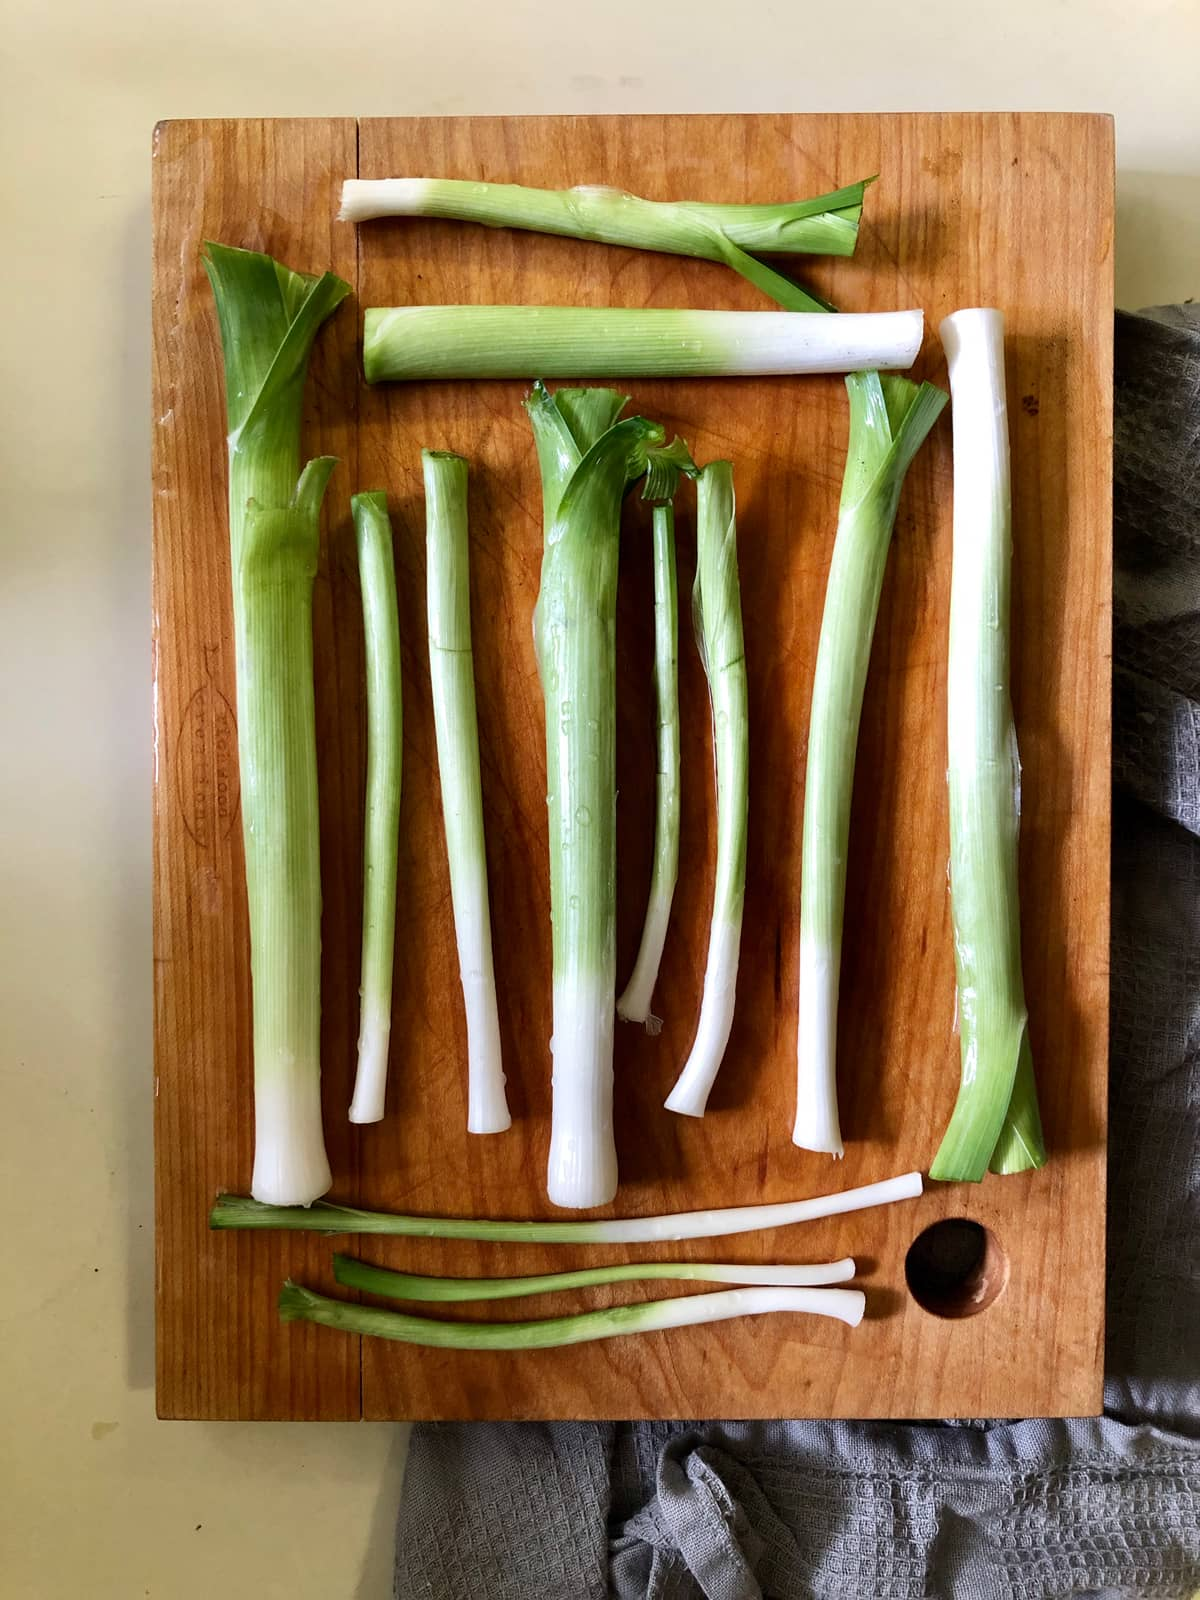 Leeks started from seed, harvested, and cleaned.